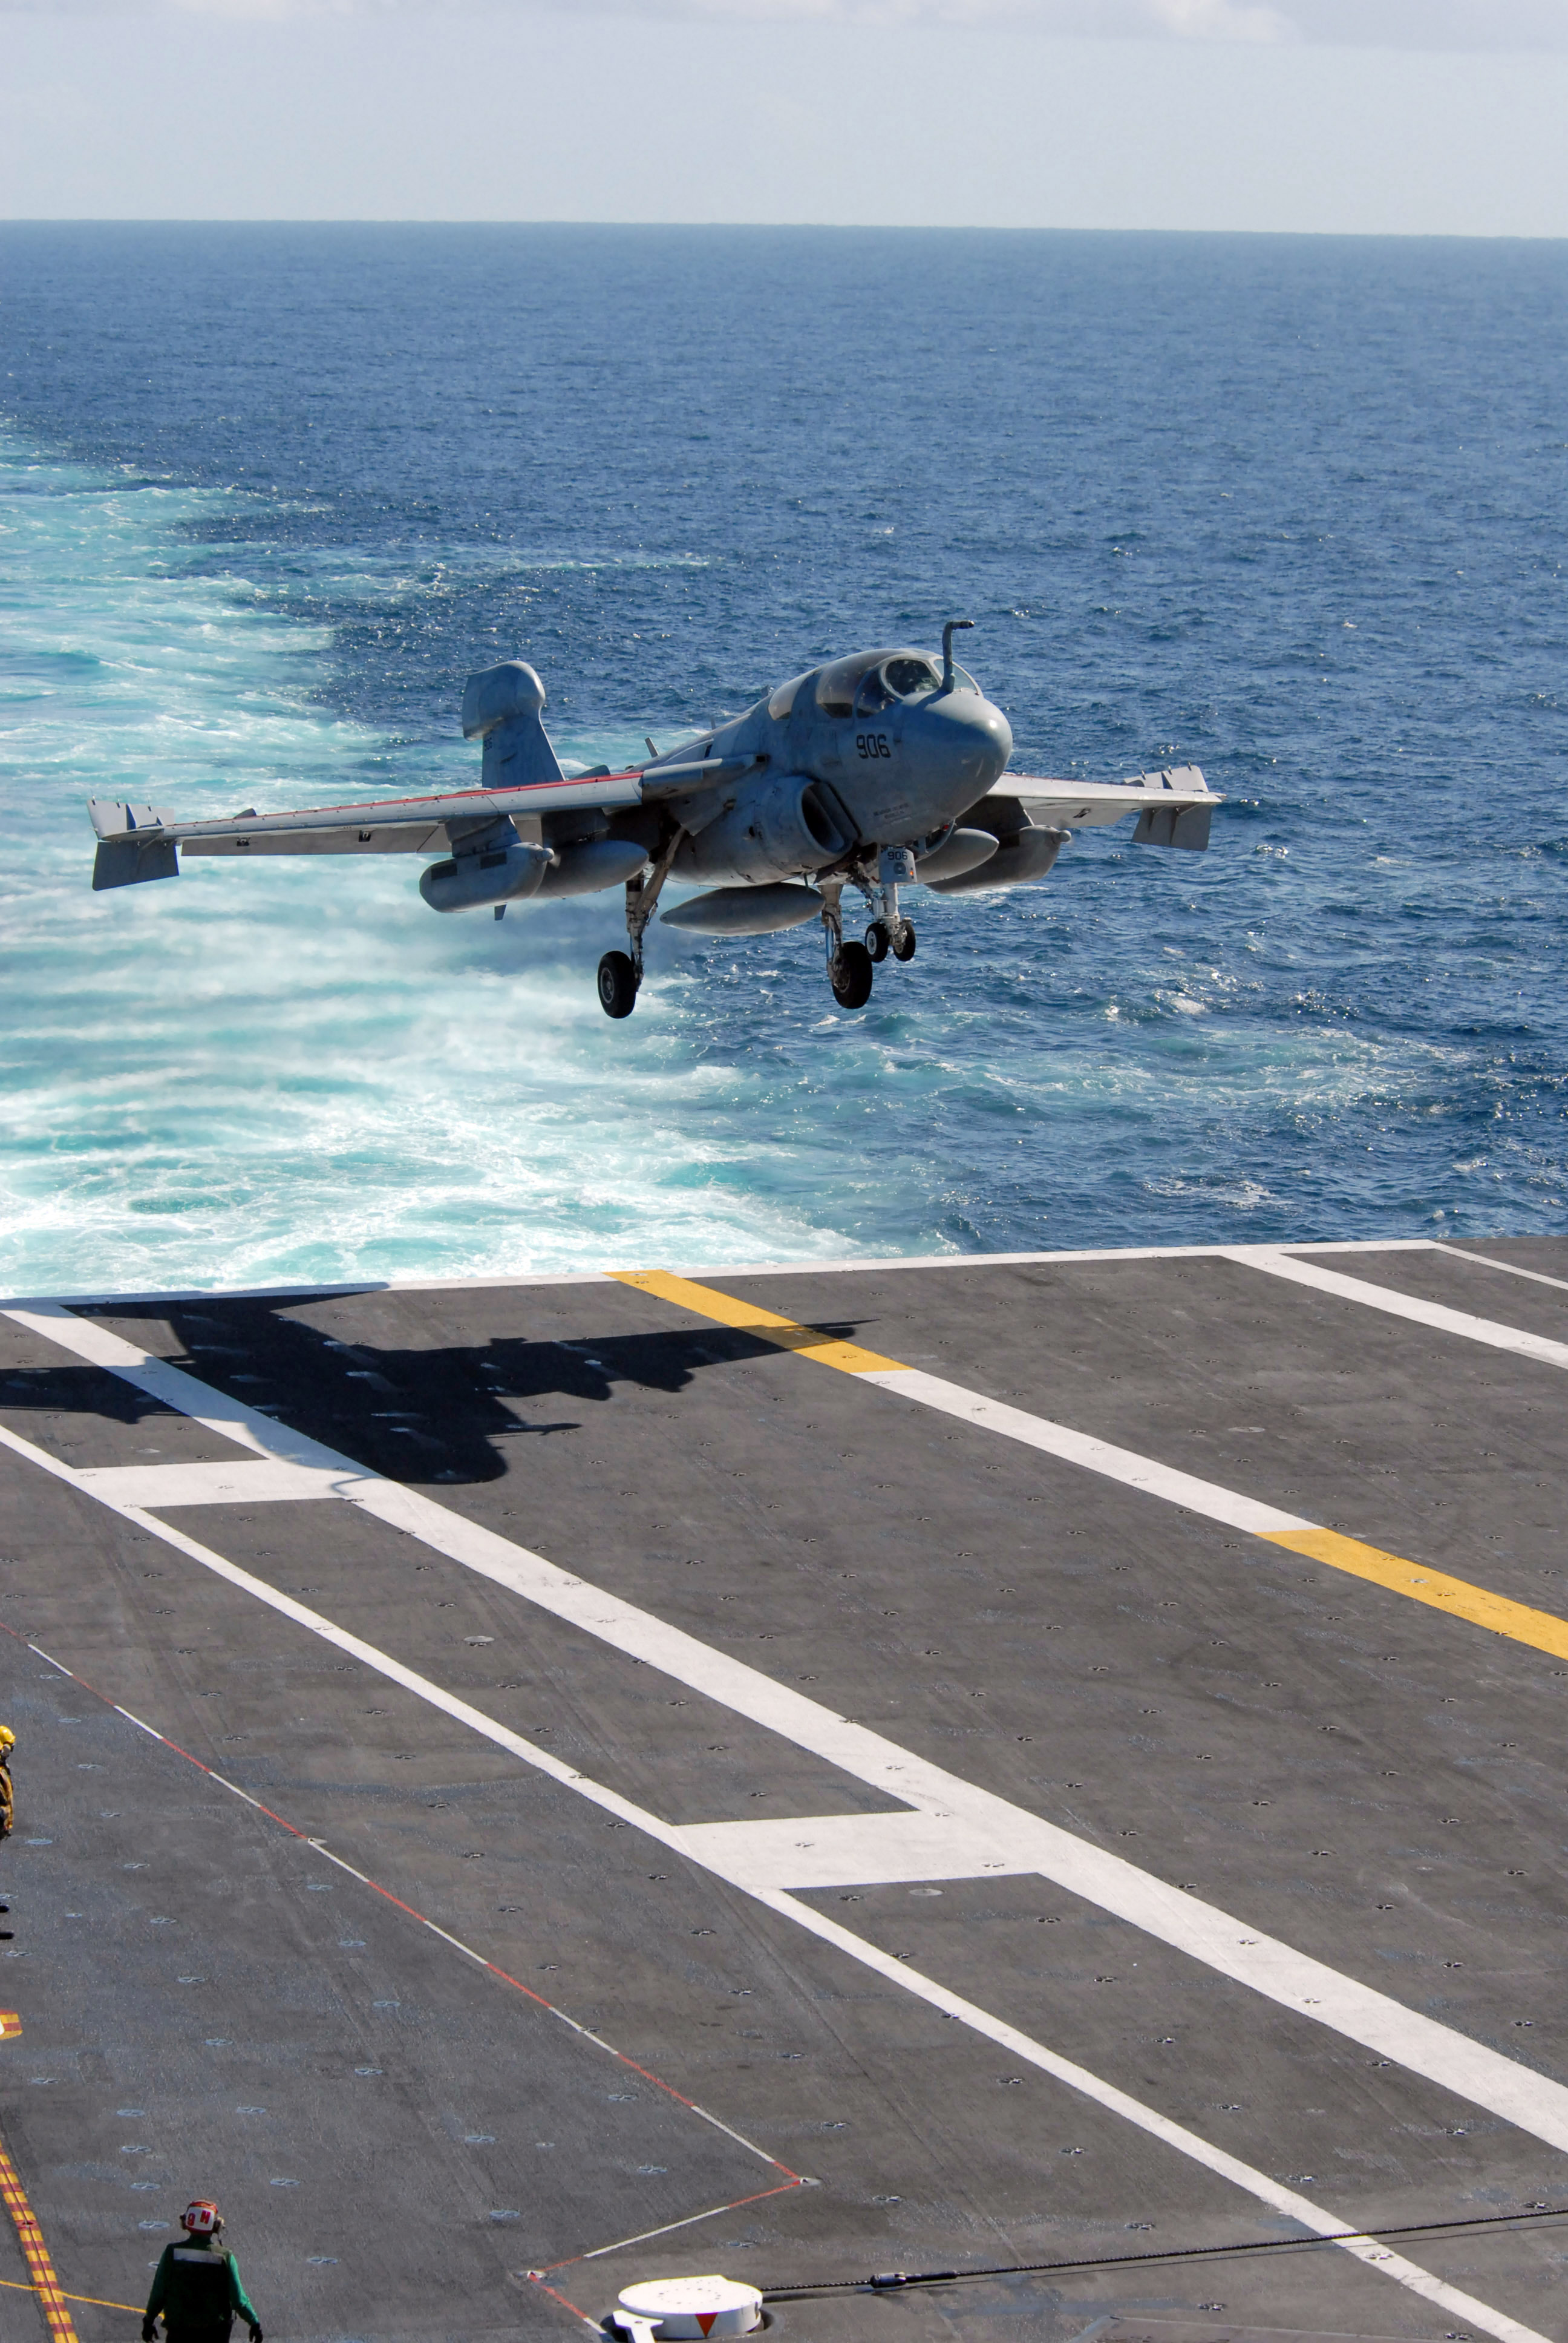 Stock Photography Image: A Jet Landing on an Aircraft Carrier's.